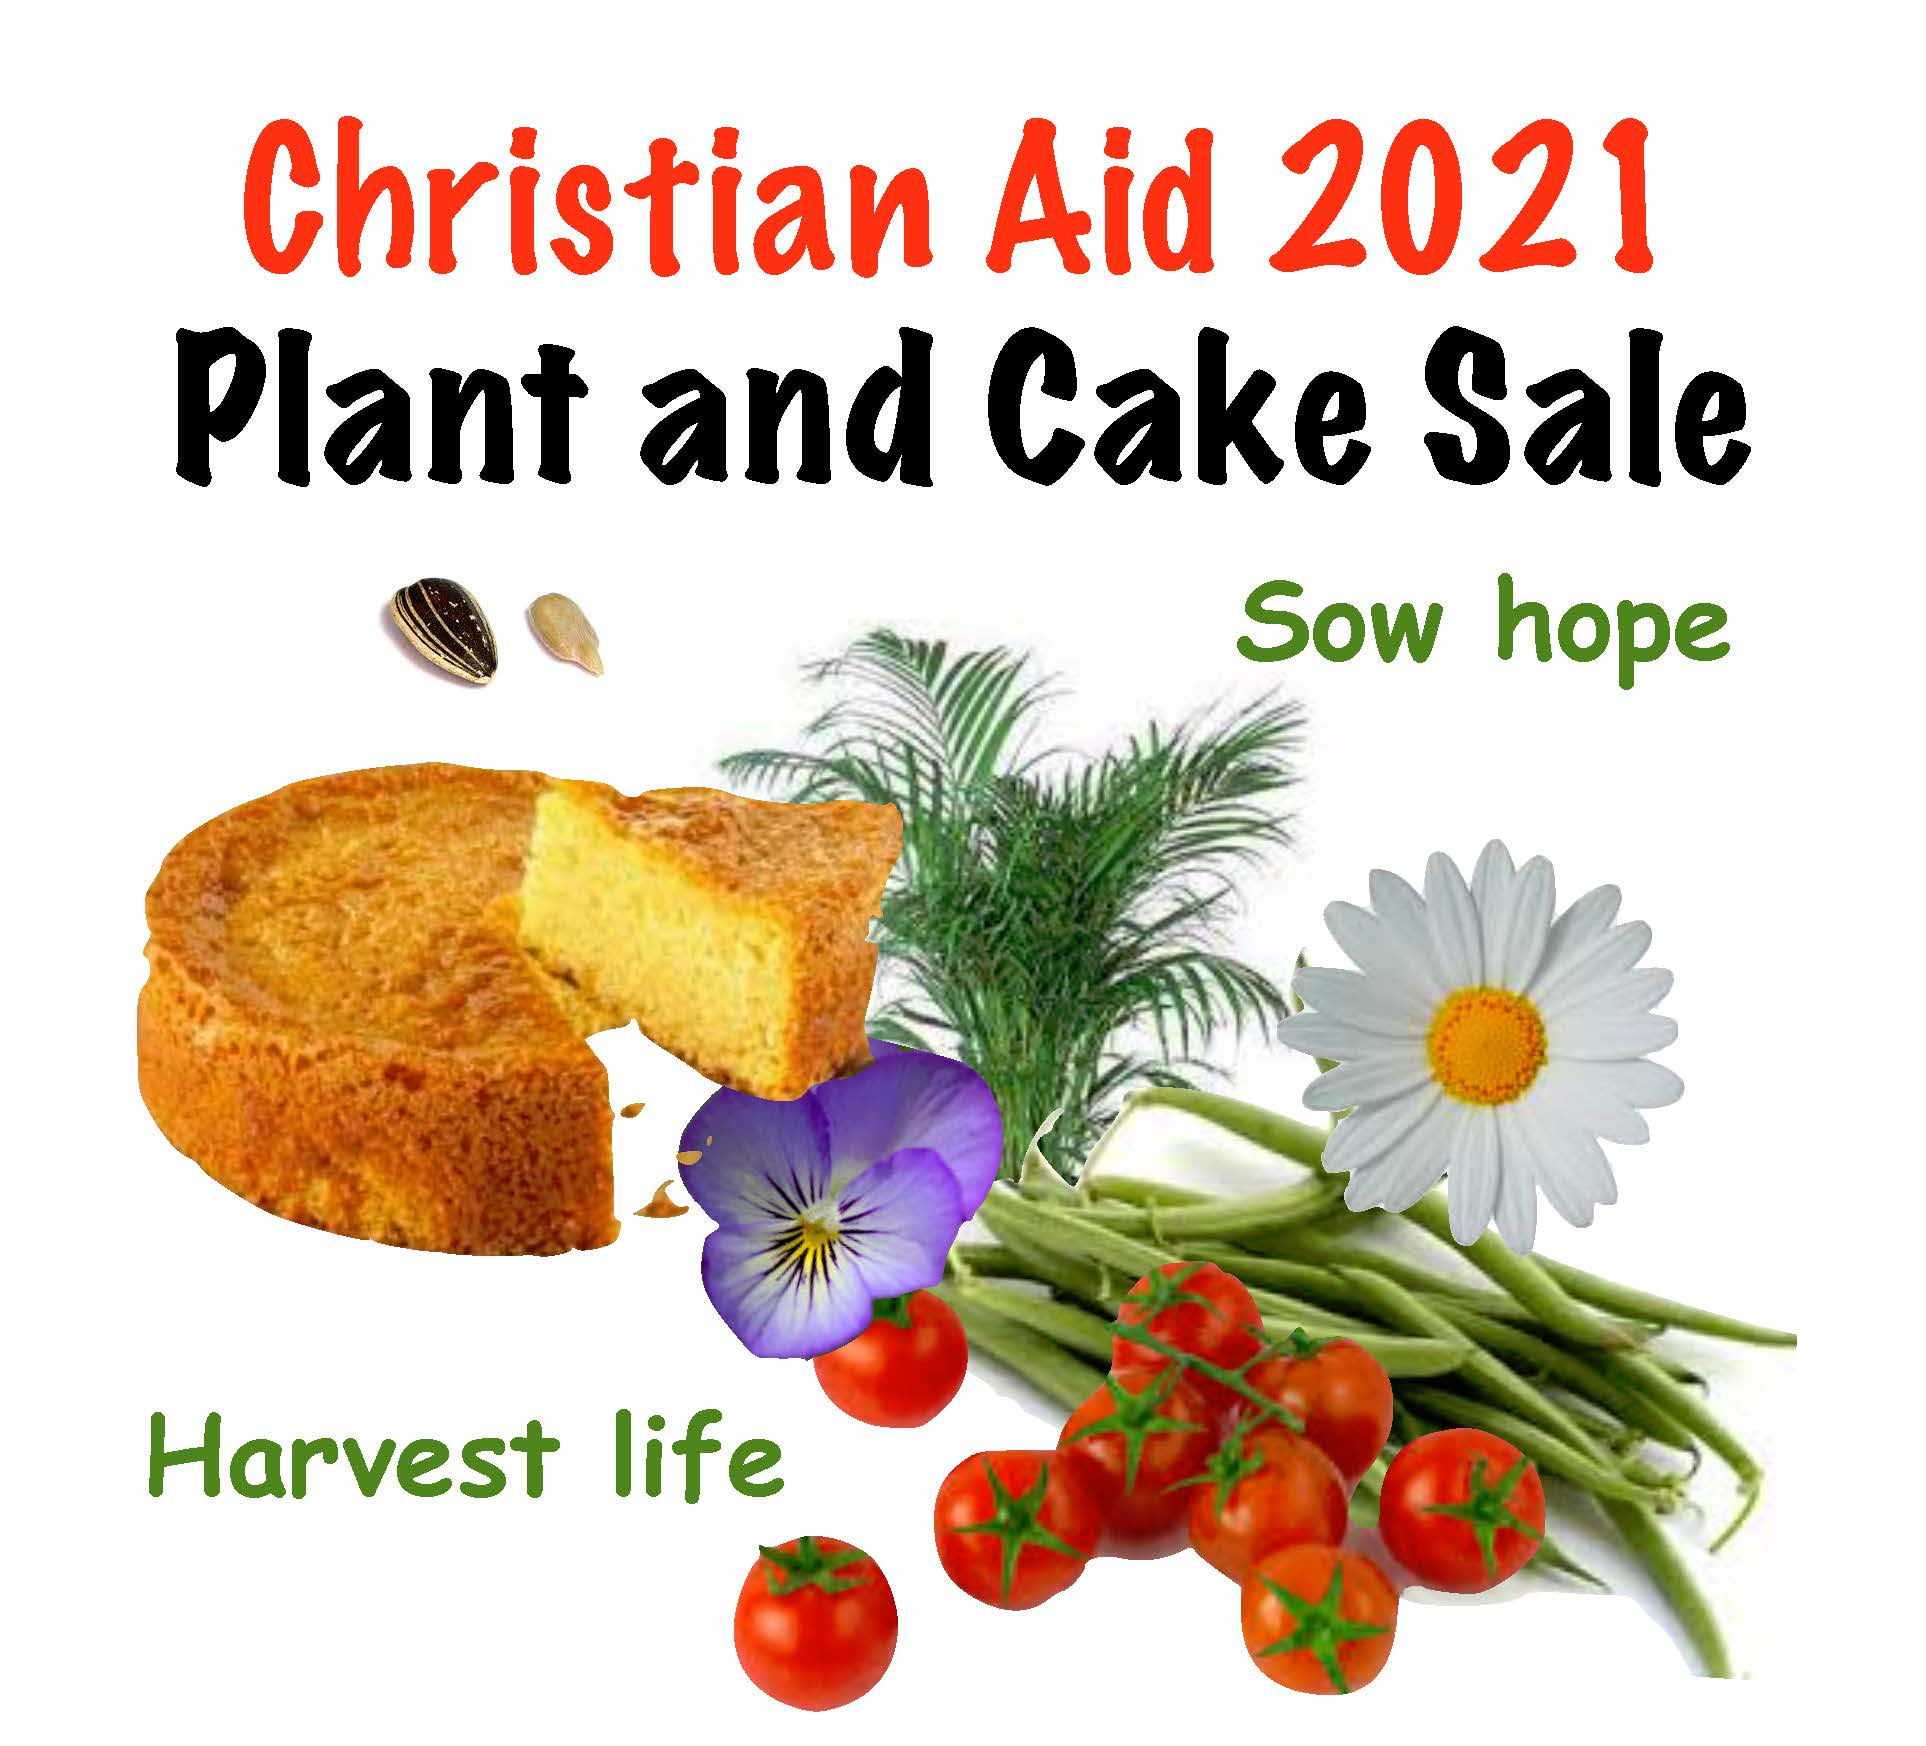 image of Christian Aid poster